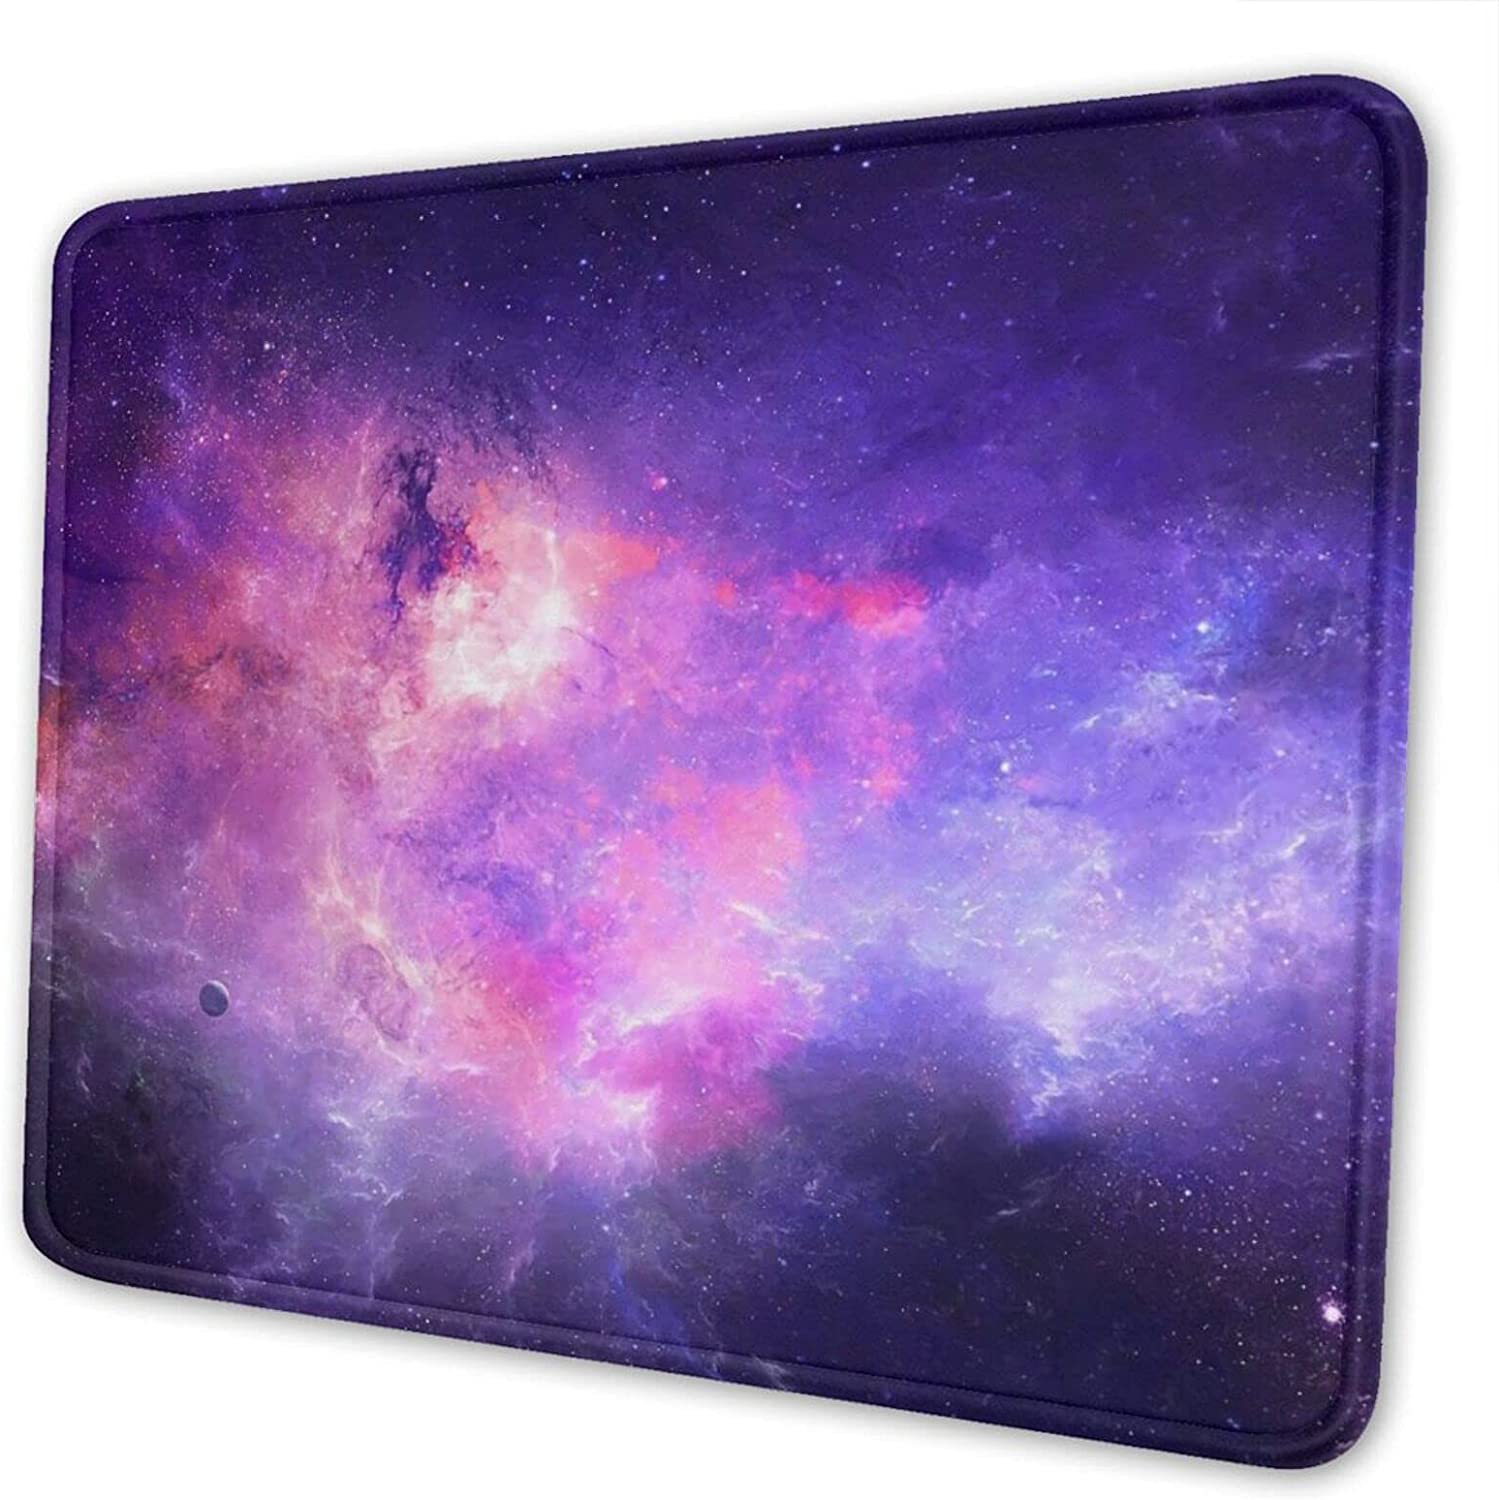 Galaxy San Diego Mall Anime Mouse Pad Non-Slip Large discharge sale Home Rubber for Base Pads